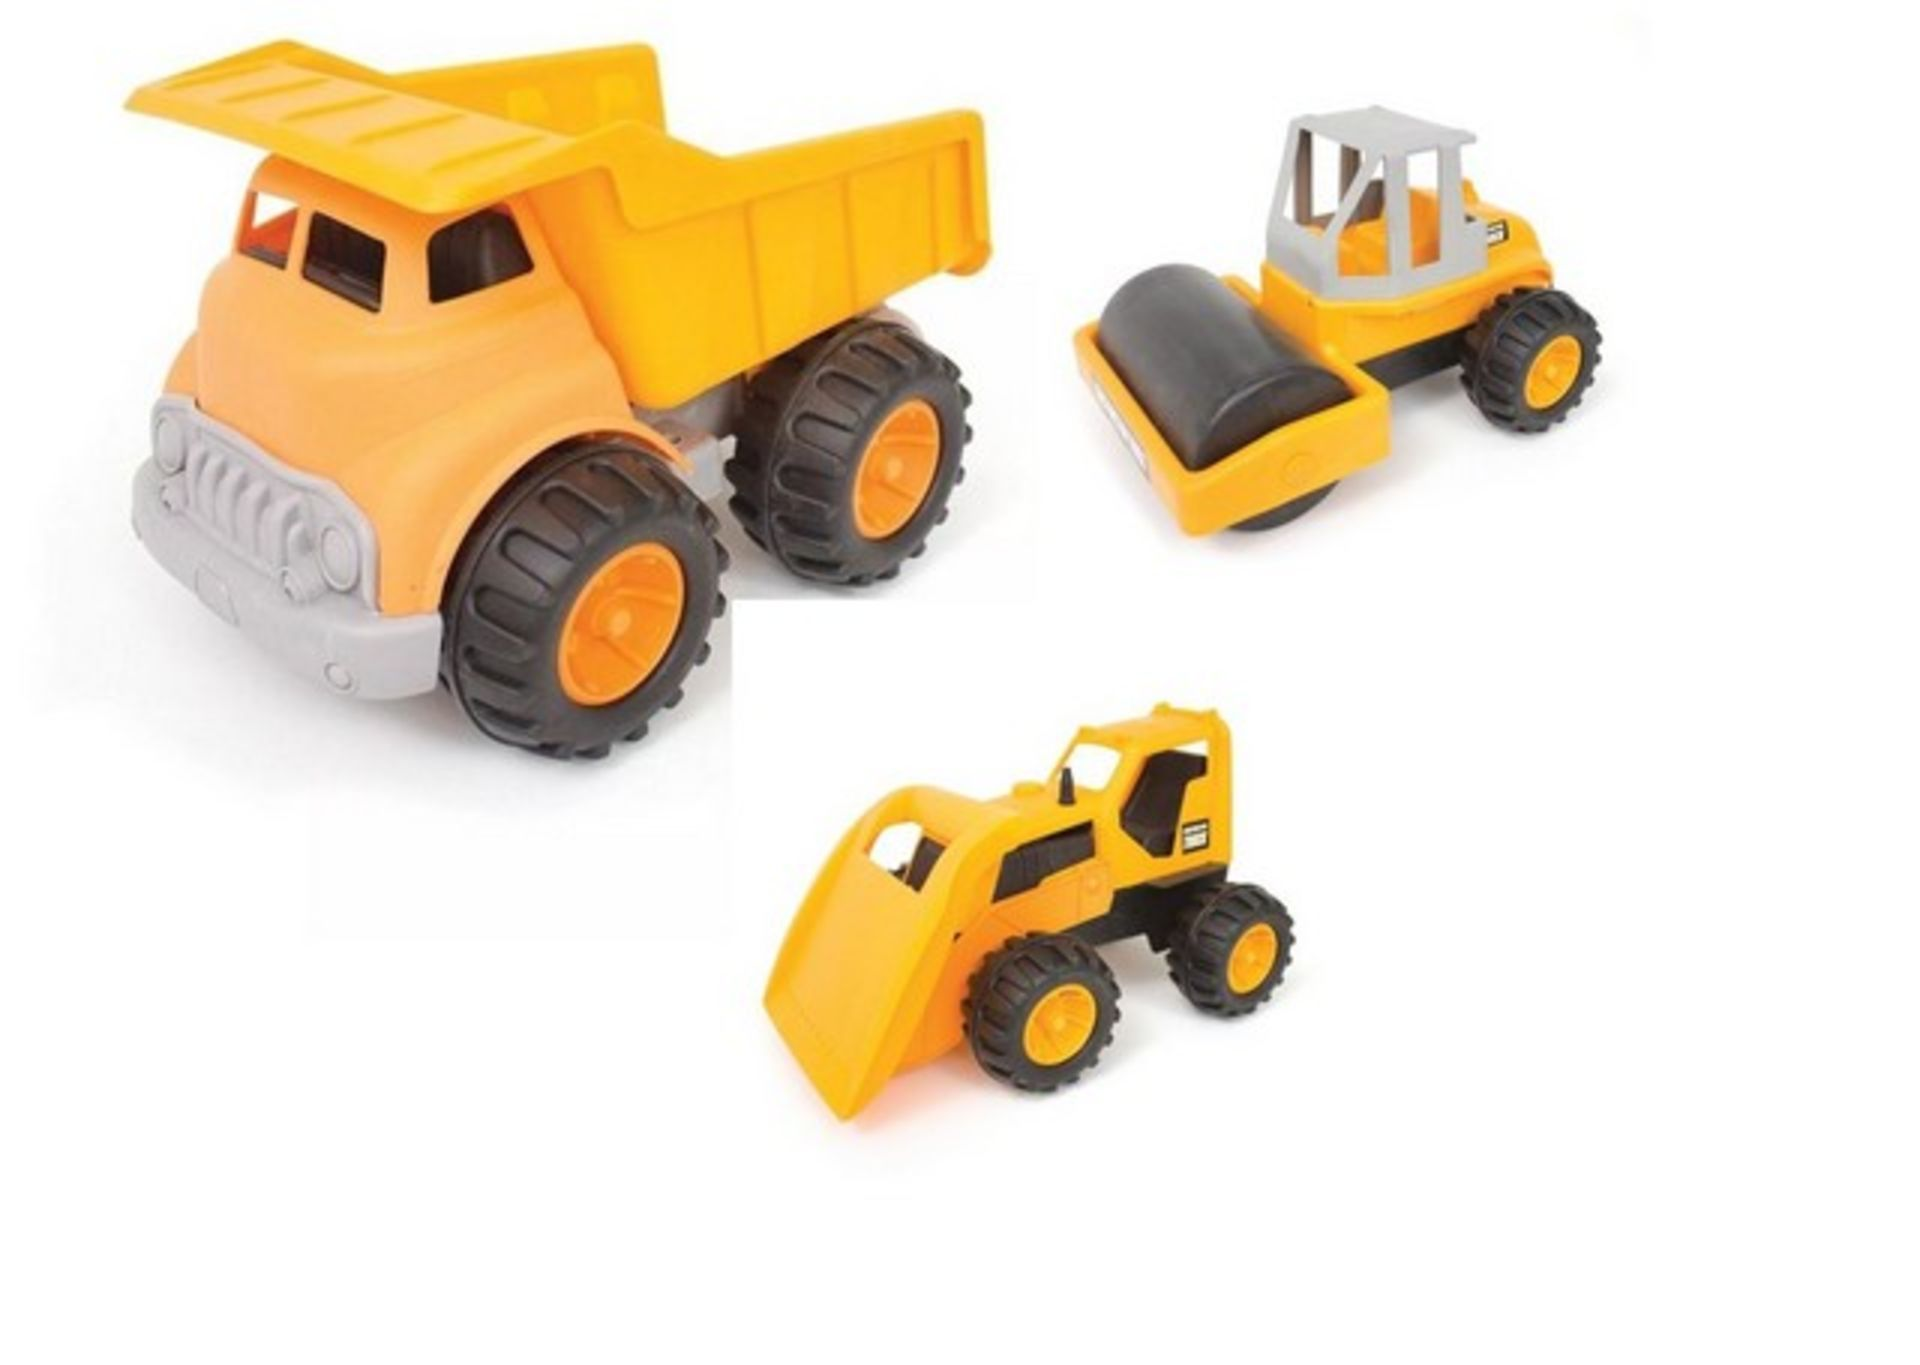 Lot 12588 - V Brand New Big Play Truck Construction Engineering Brigade Vehicle Set - Ideal For Sandpit Play (